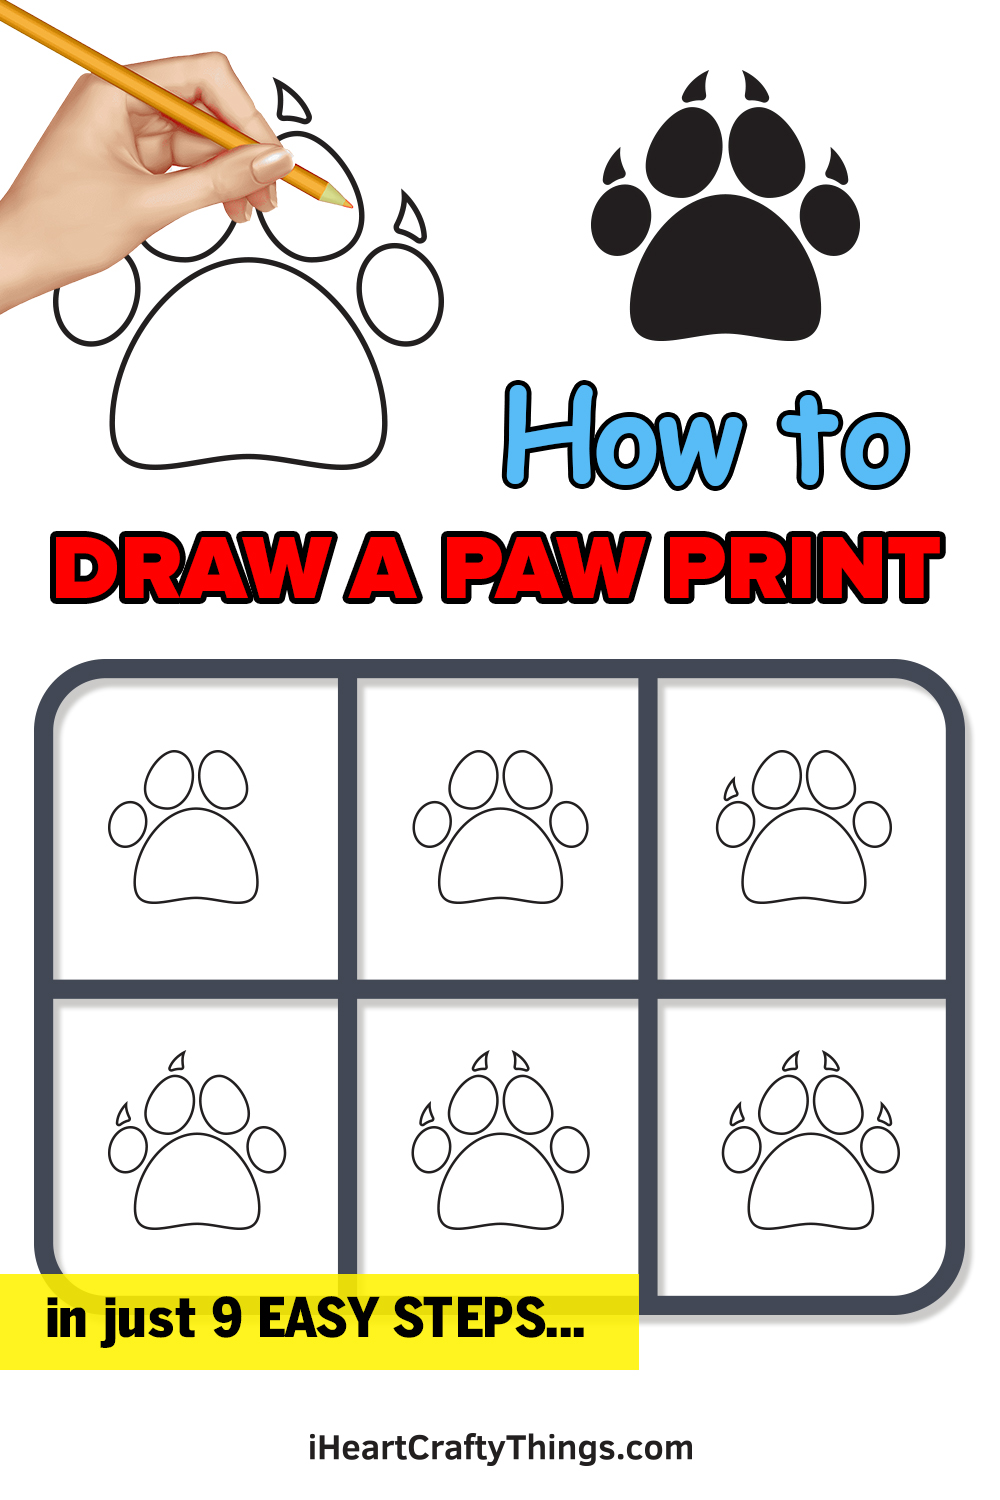 how to draw a paw print in 9 easy steps